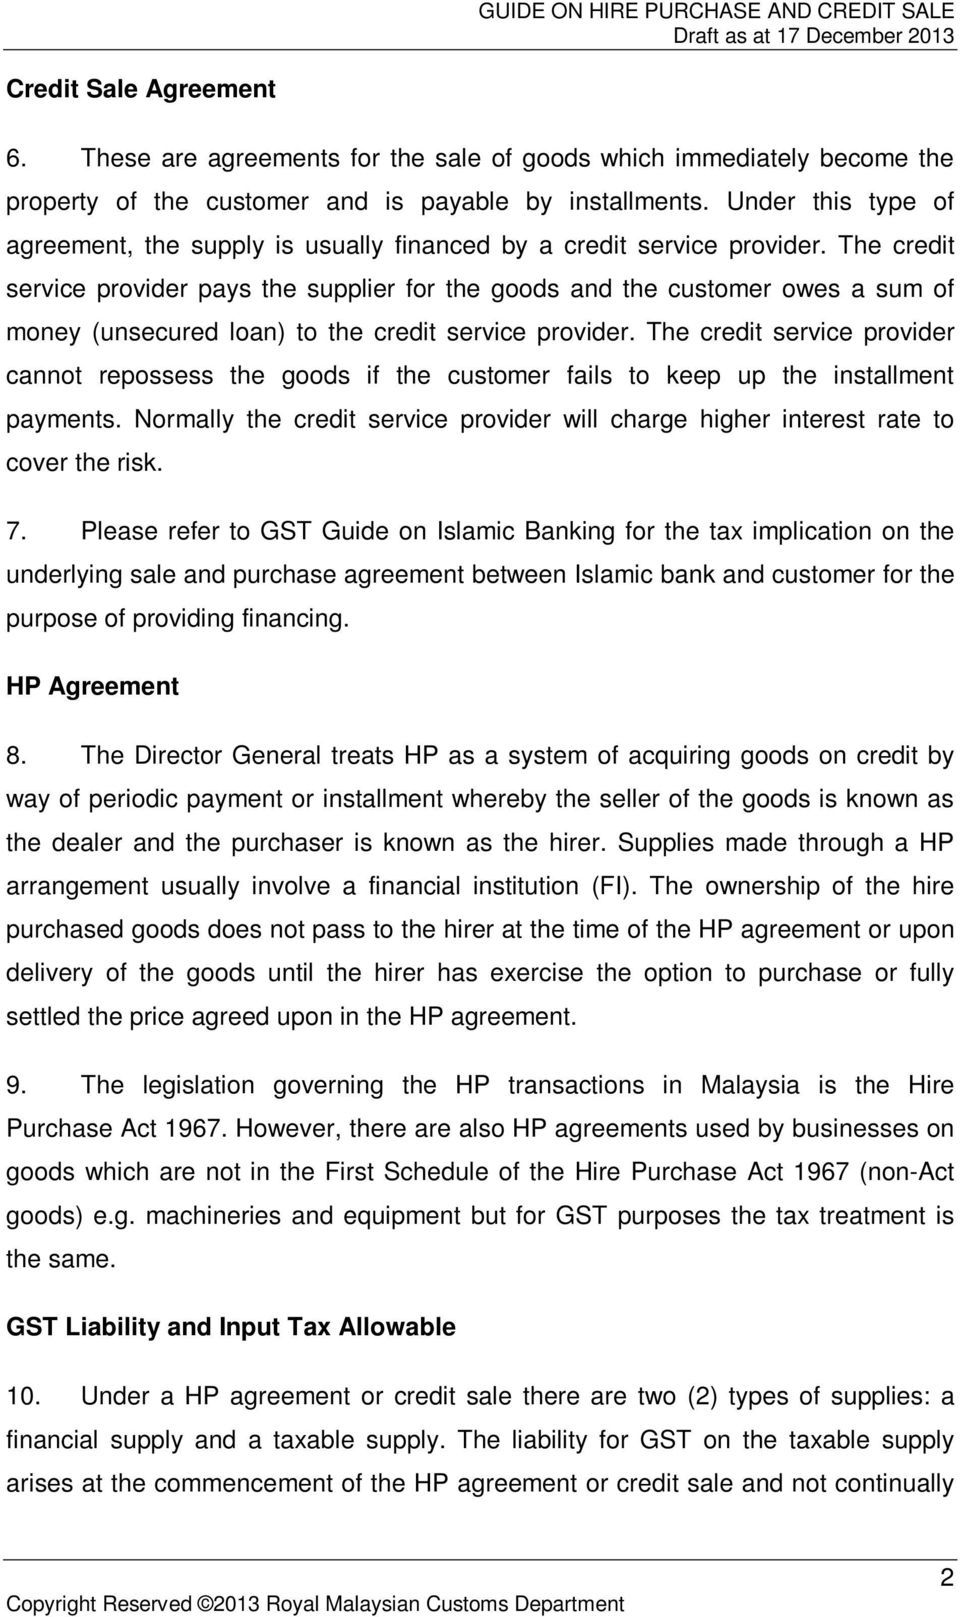 Royal Malaysian Customs Goods And Services Tax Guide Pdf